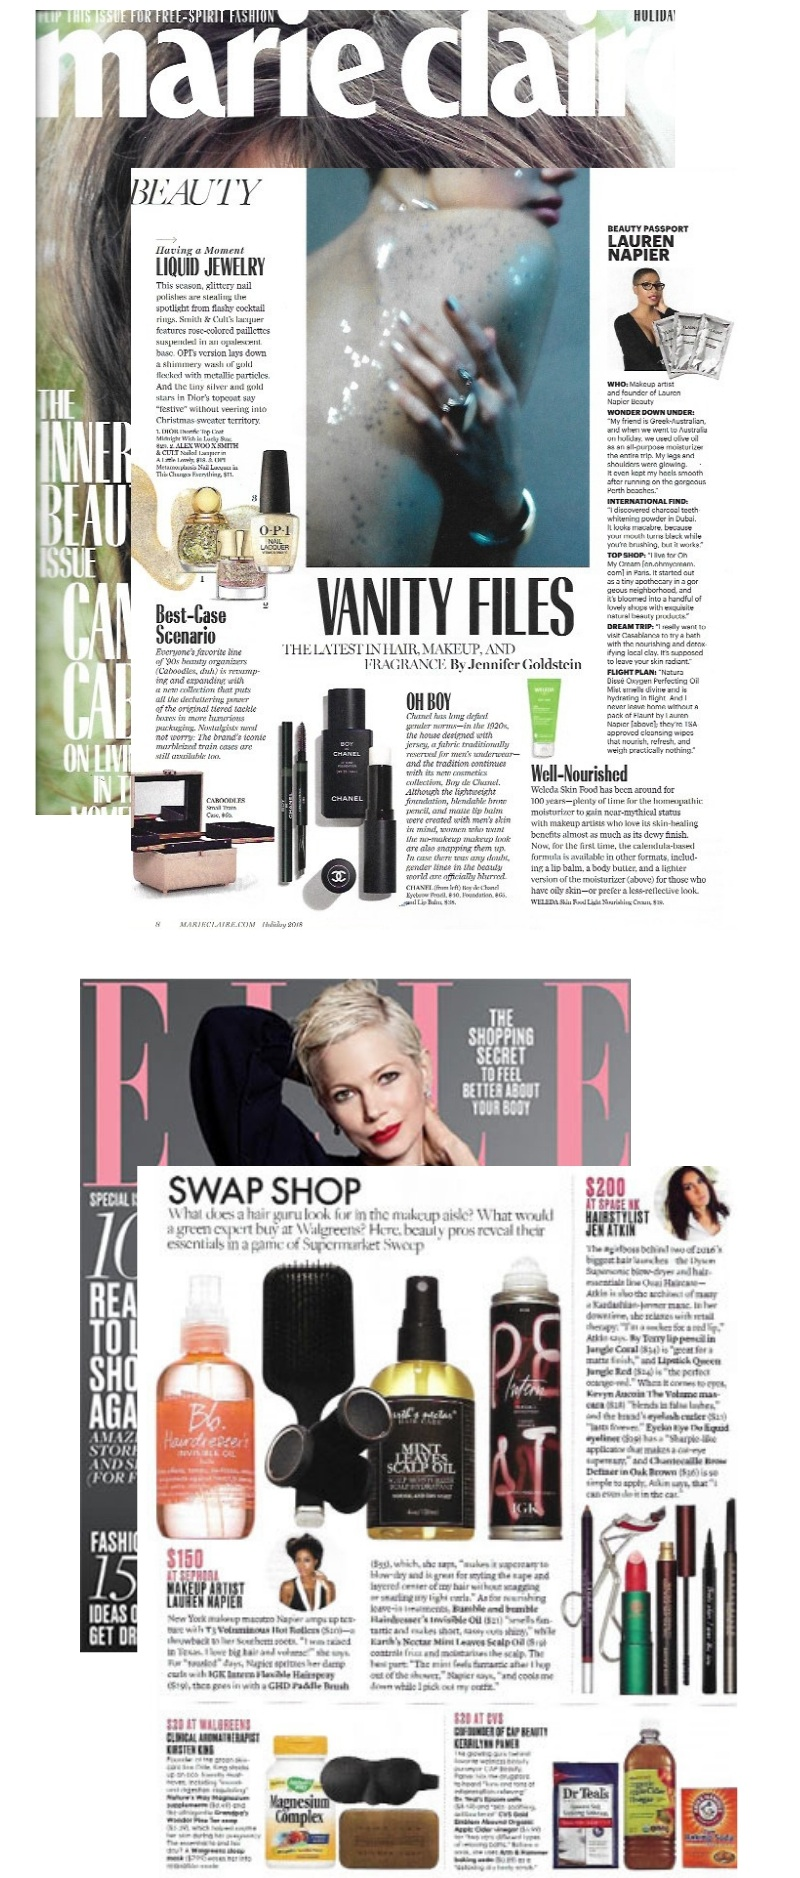 LAUREN NAPIER MARIE CLAIRE COSMO IN THE PRESS BUSINESS WOMAN